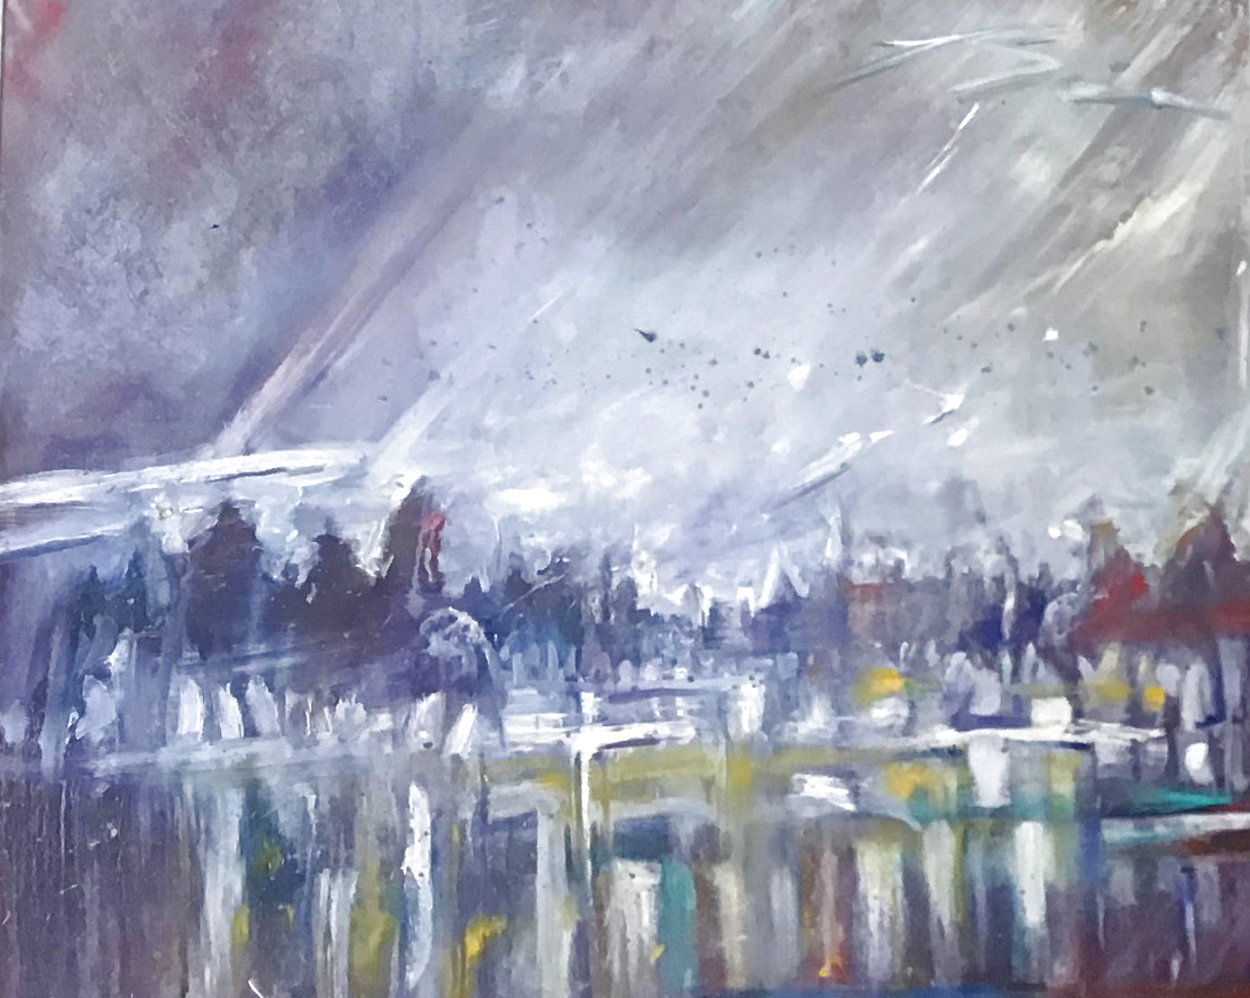 Visions of the Fog in the Morning 1985 42x62 Super Huge Original Painting by Earl Biss